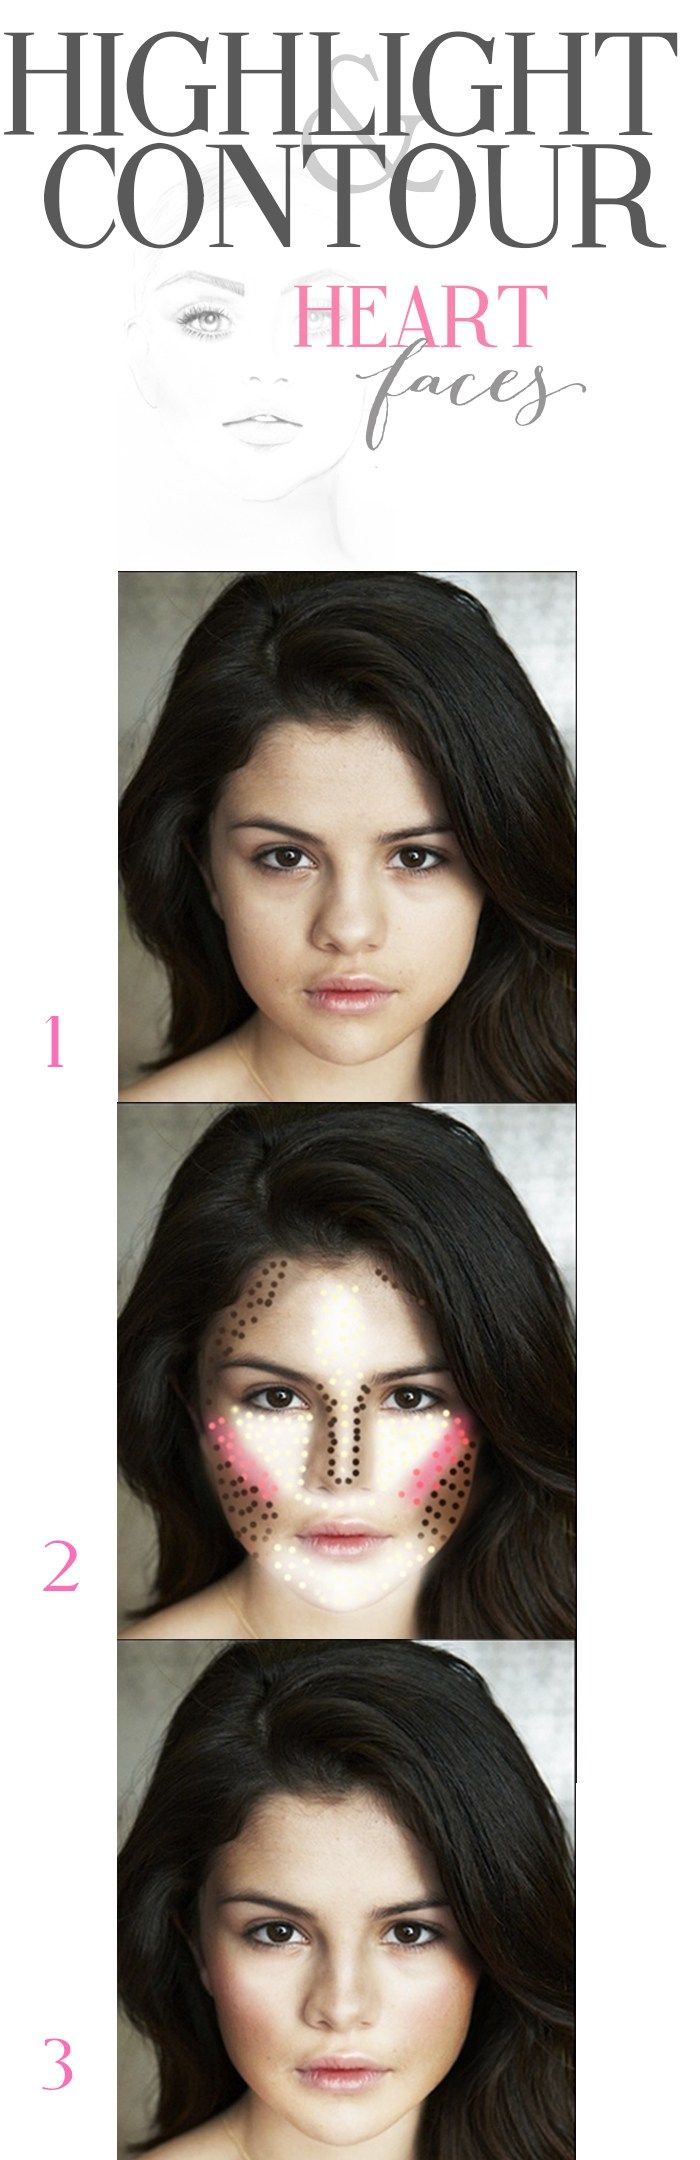 Contouring for a heart shaped face!